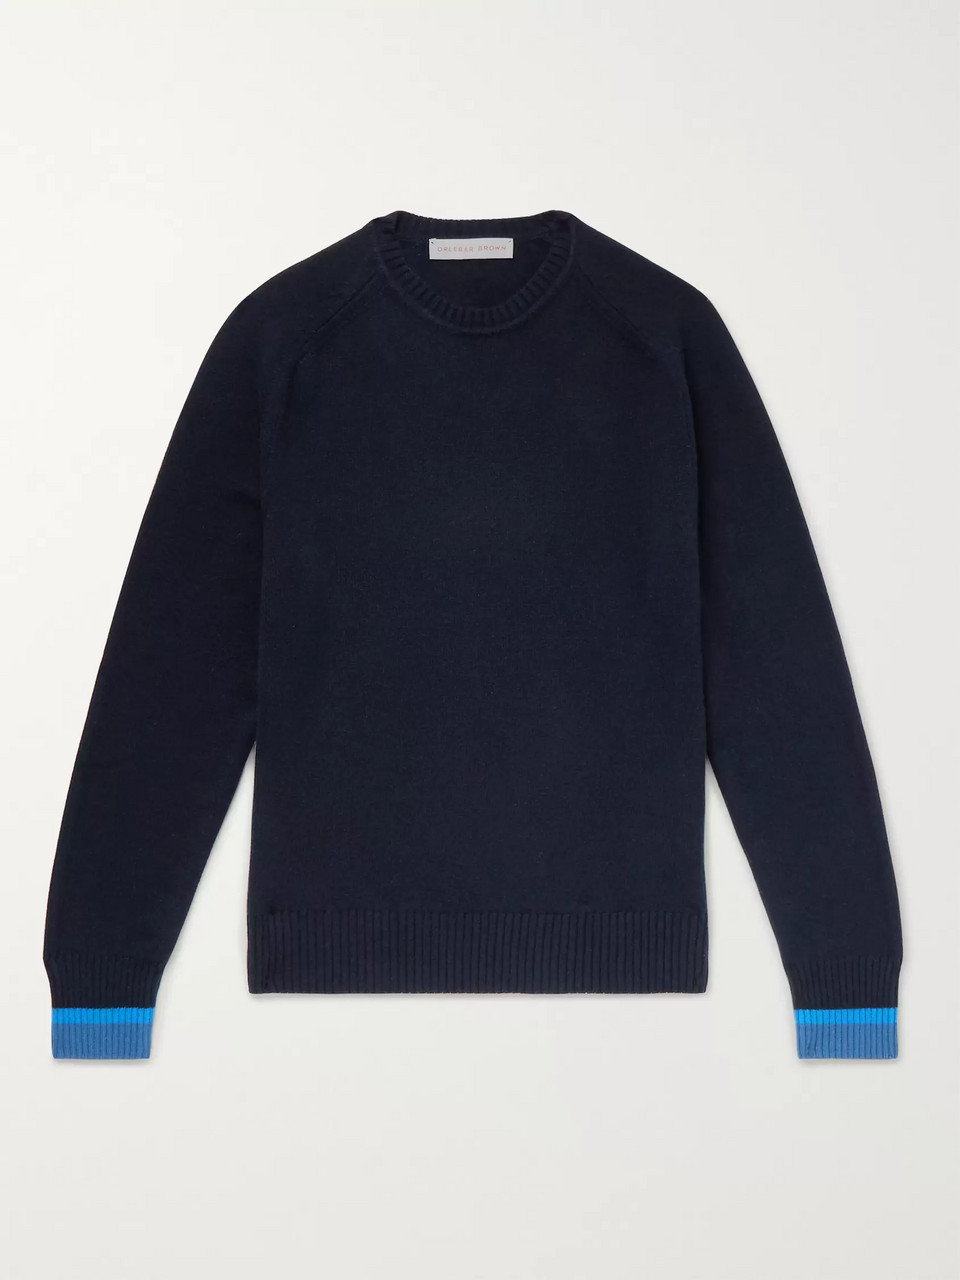 Orlebar Brown Lucas Contrast-Tipped Cashmere Sweater